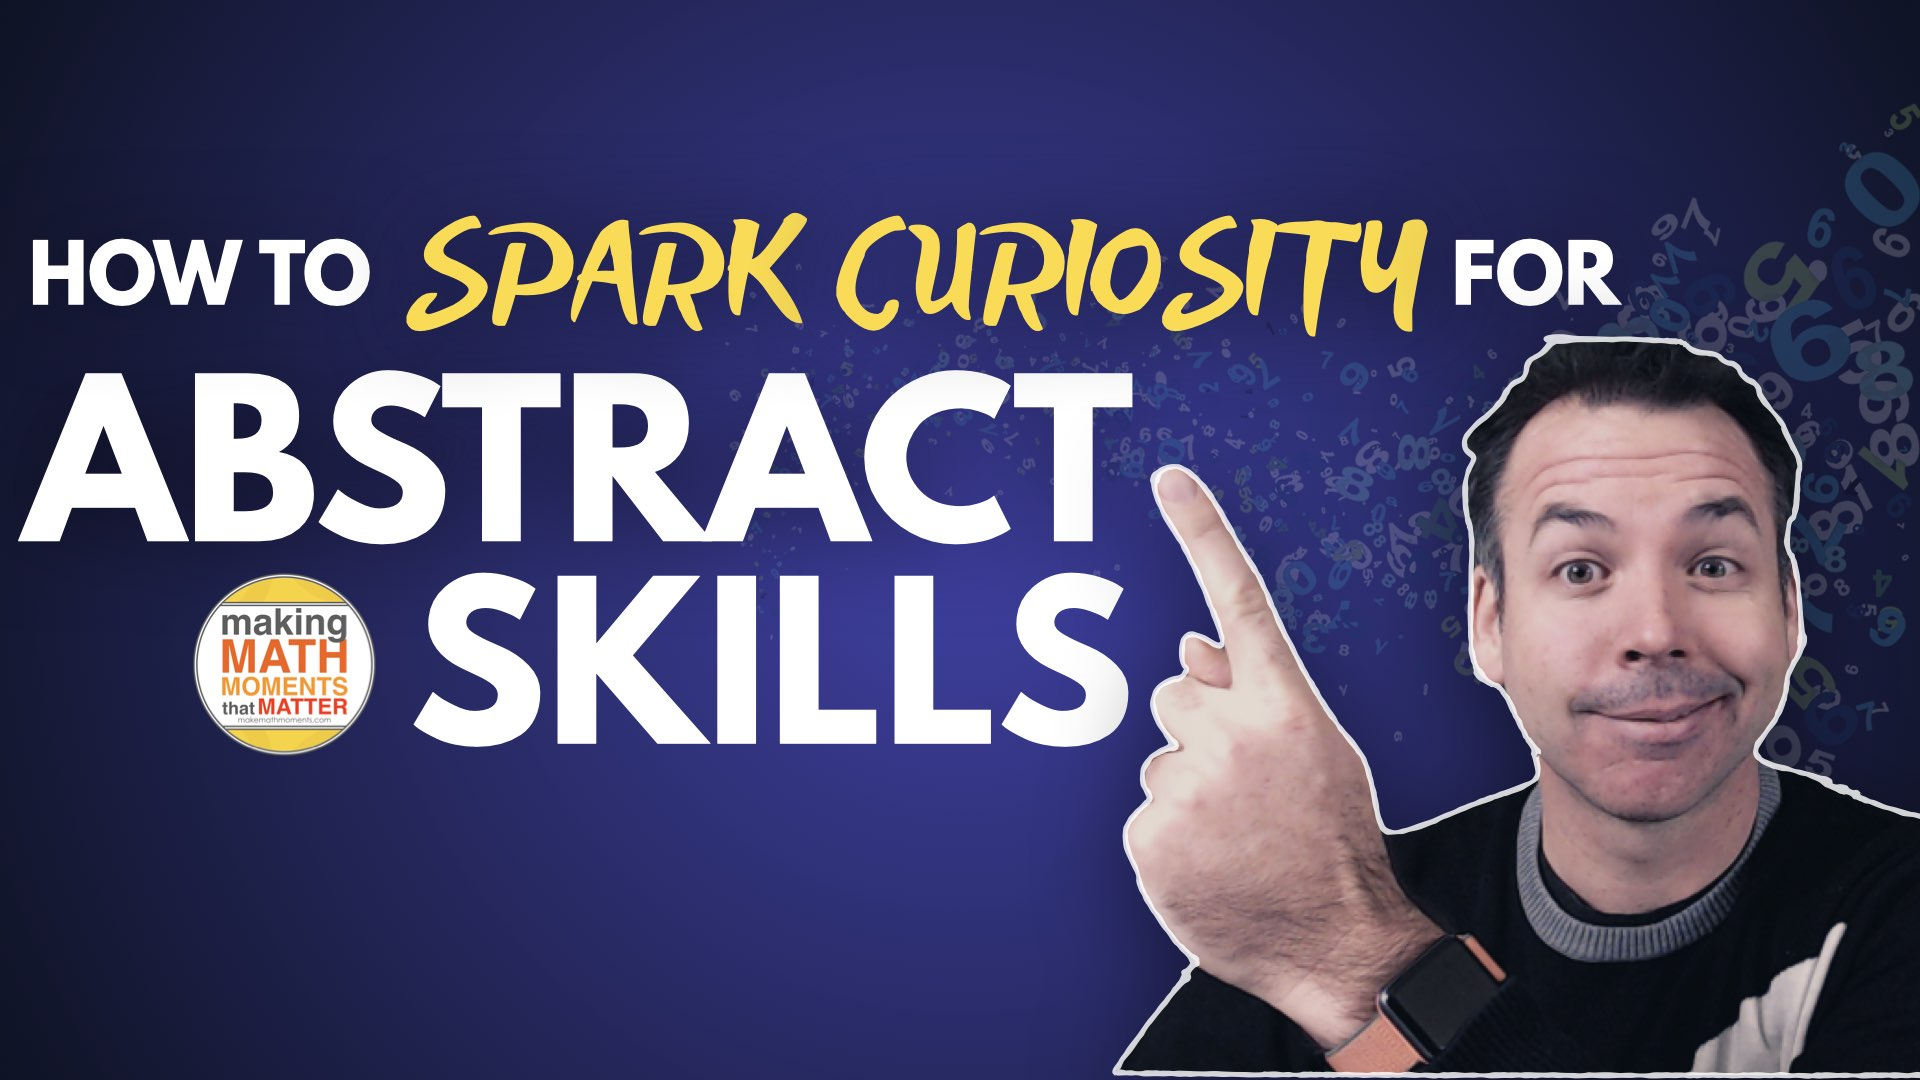 How To Spark Curiosity For Abstract Skills